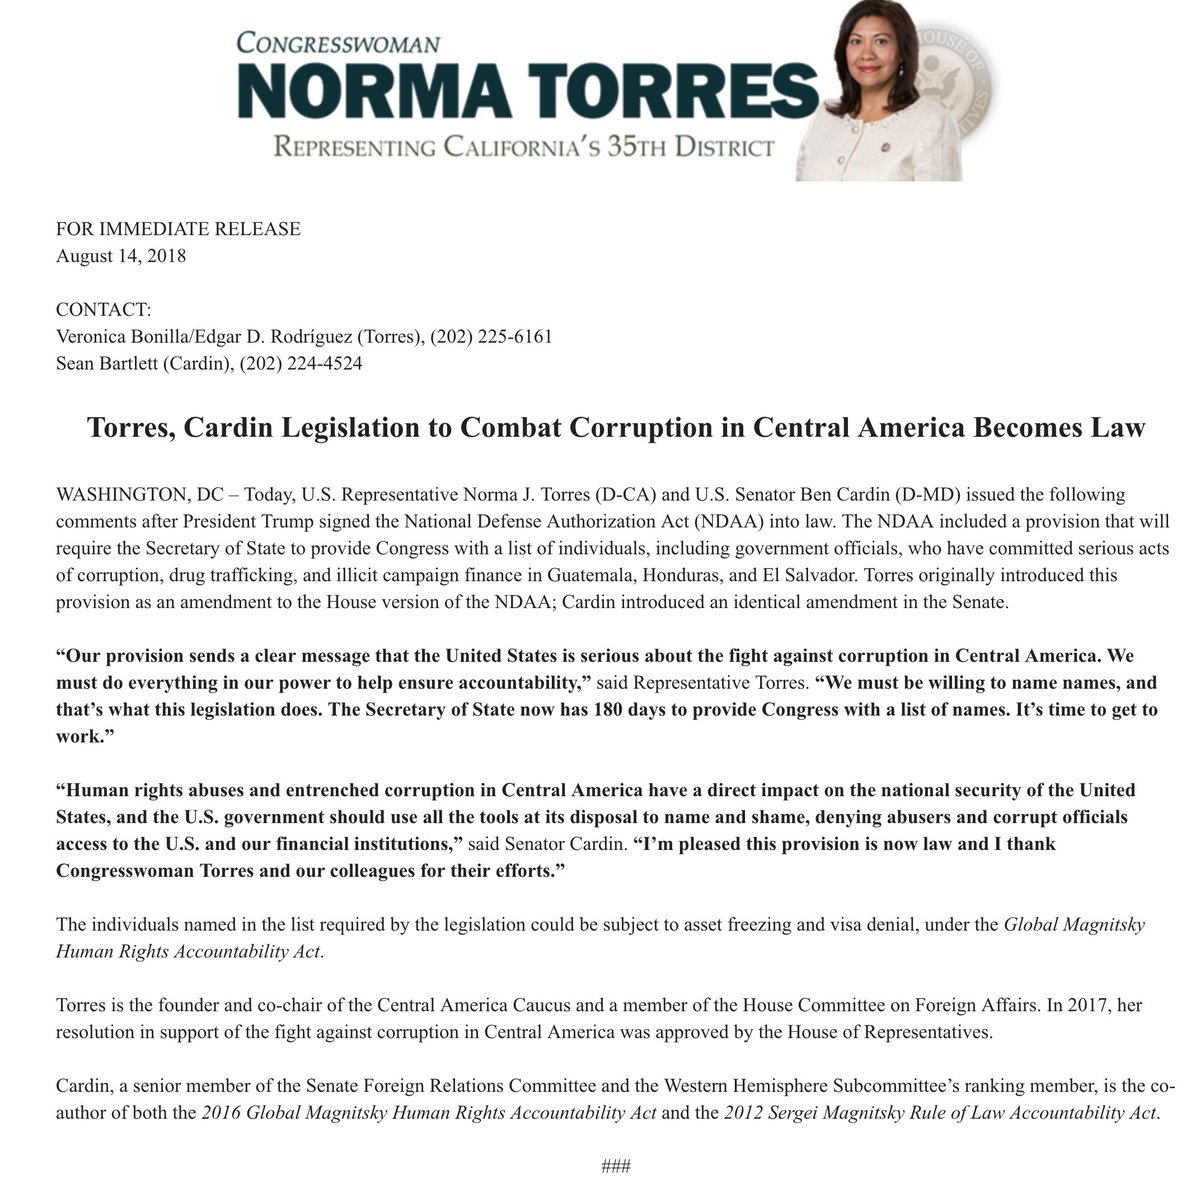 Legislation requiring @StateDept to send Congress a list of individuals from Guatemala, Honduras and El Salvador who are involved in serious corruption cases passed in the House, Senate, and was signed into law today. Read statement from authors @NormaJTorres and @SenatorCardin: